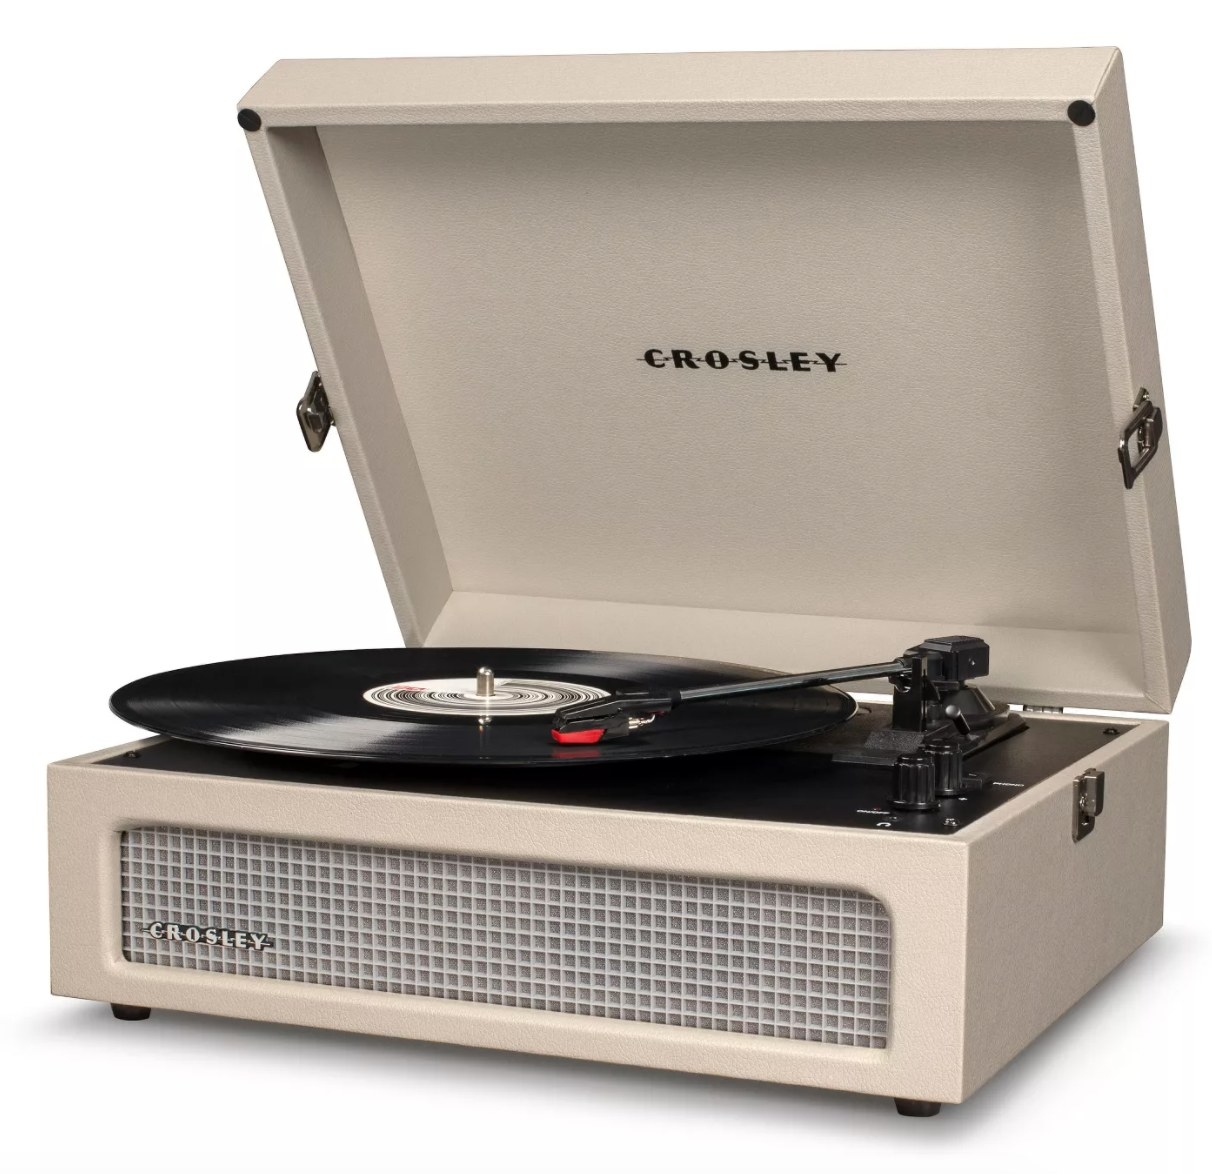 A turntable with a beige/white case playing a record